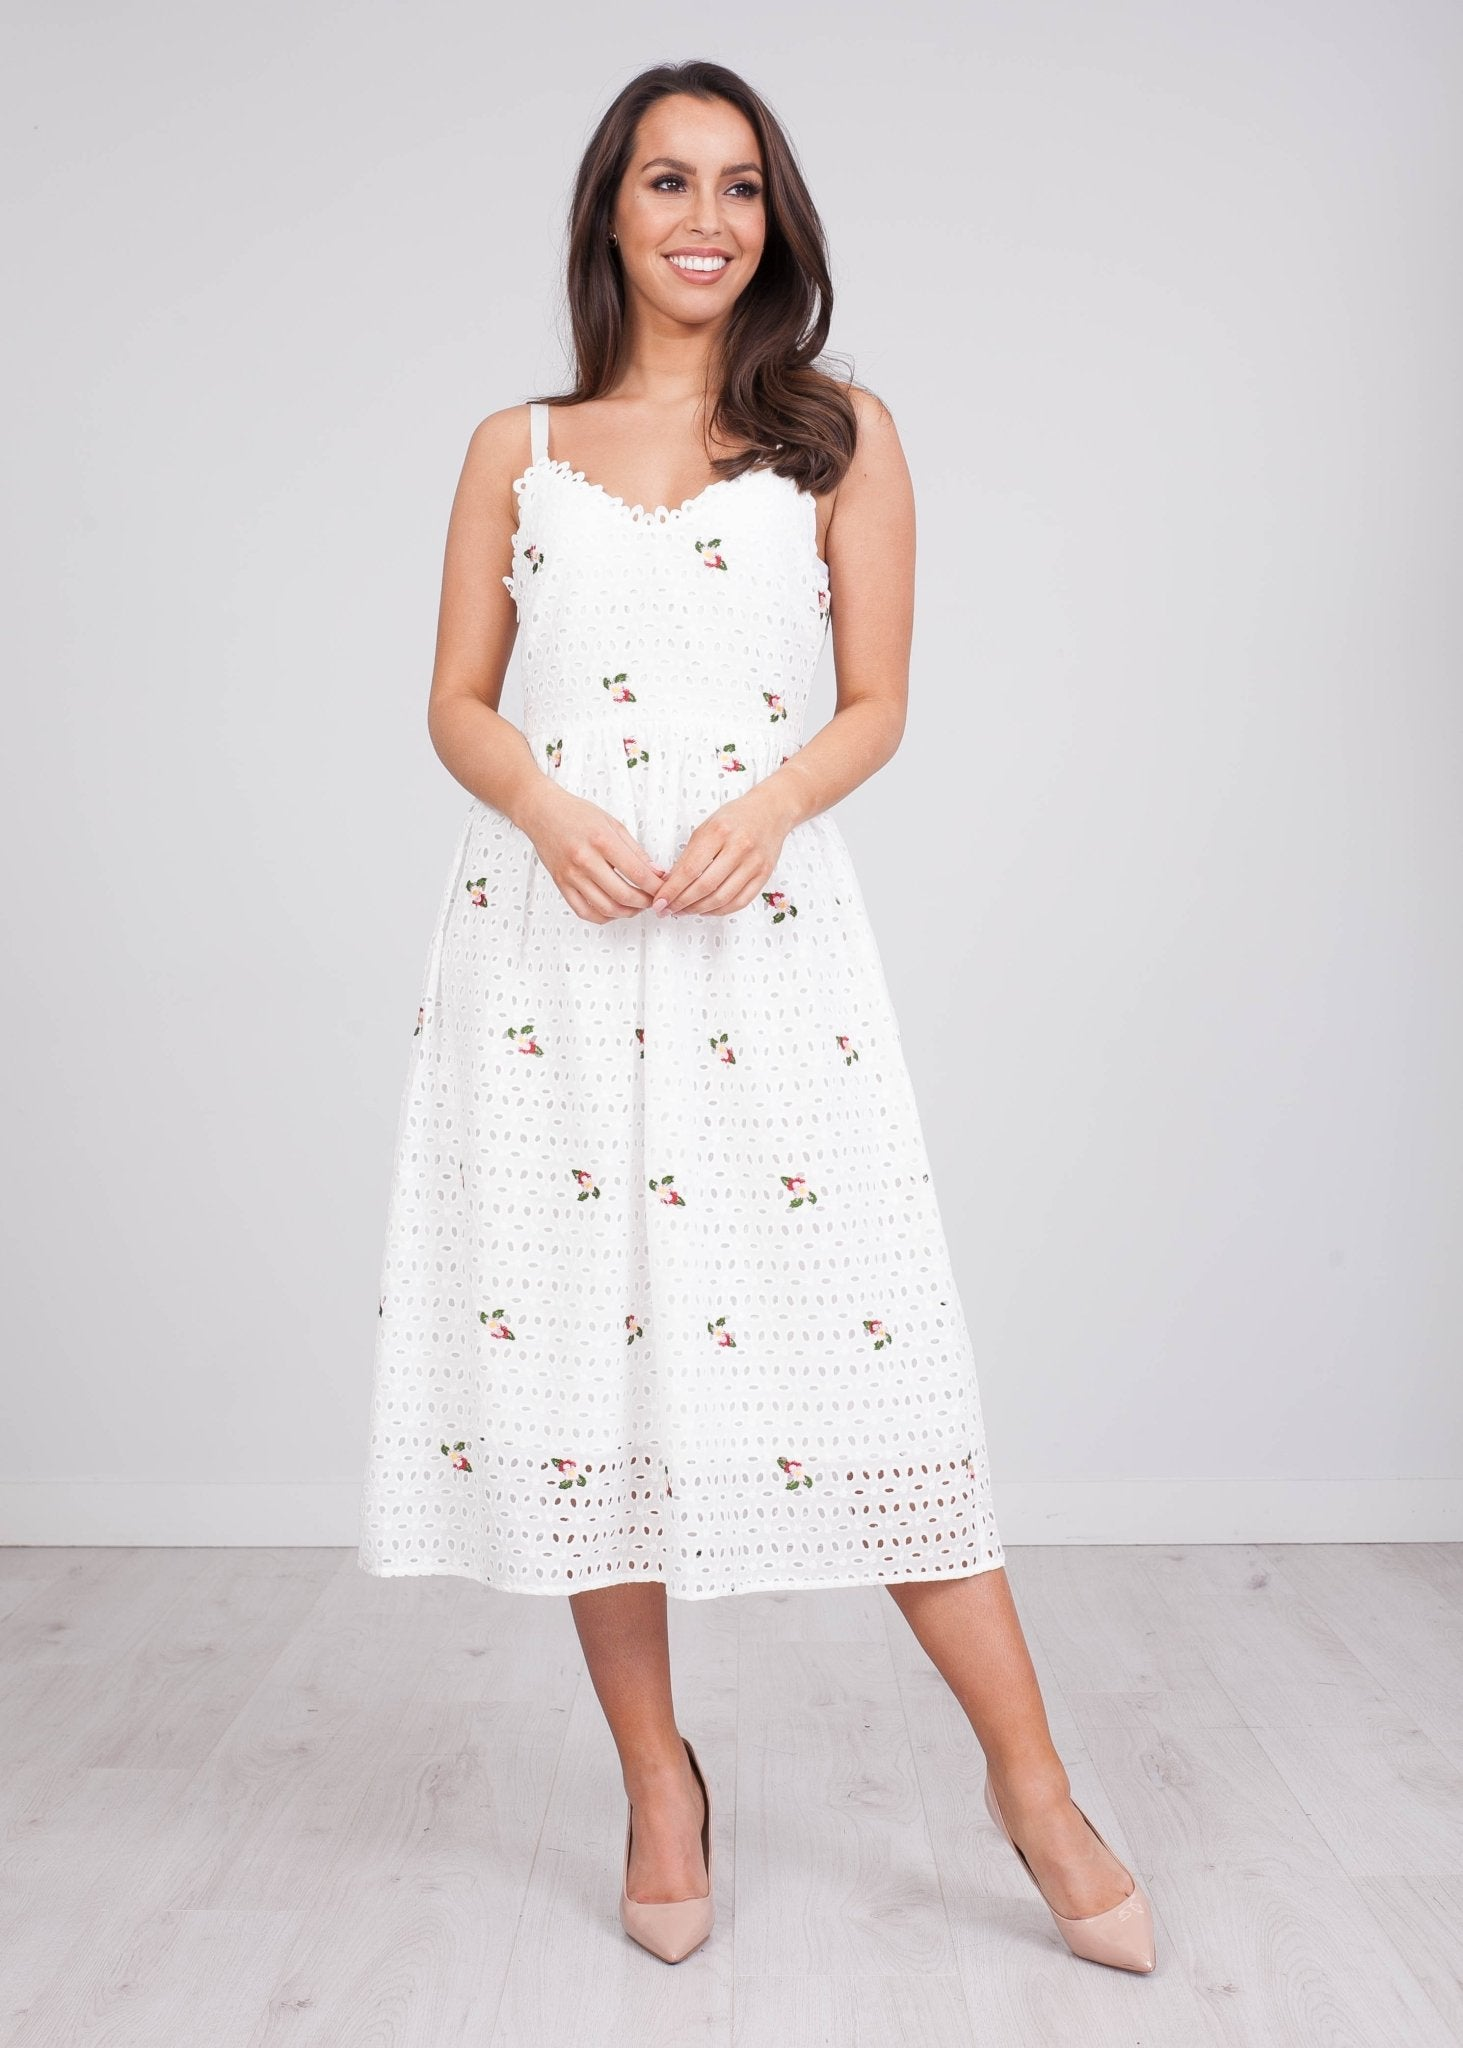 Jasmine White Midi Summer Dress - The Walk in Wardrobe